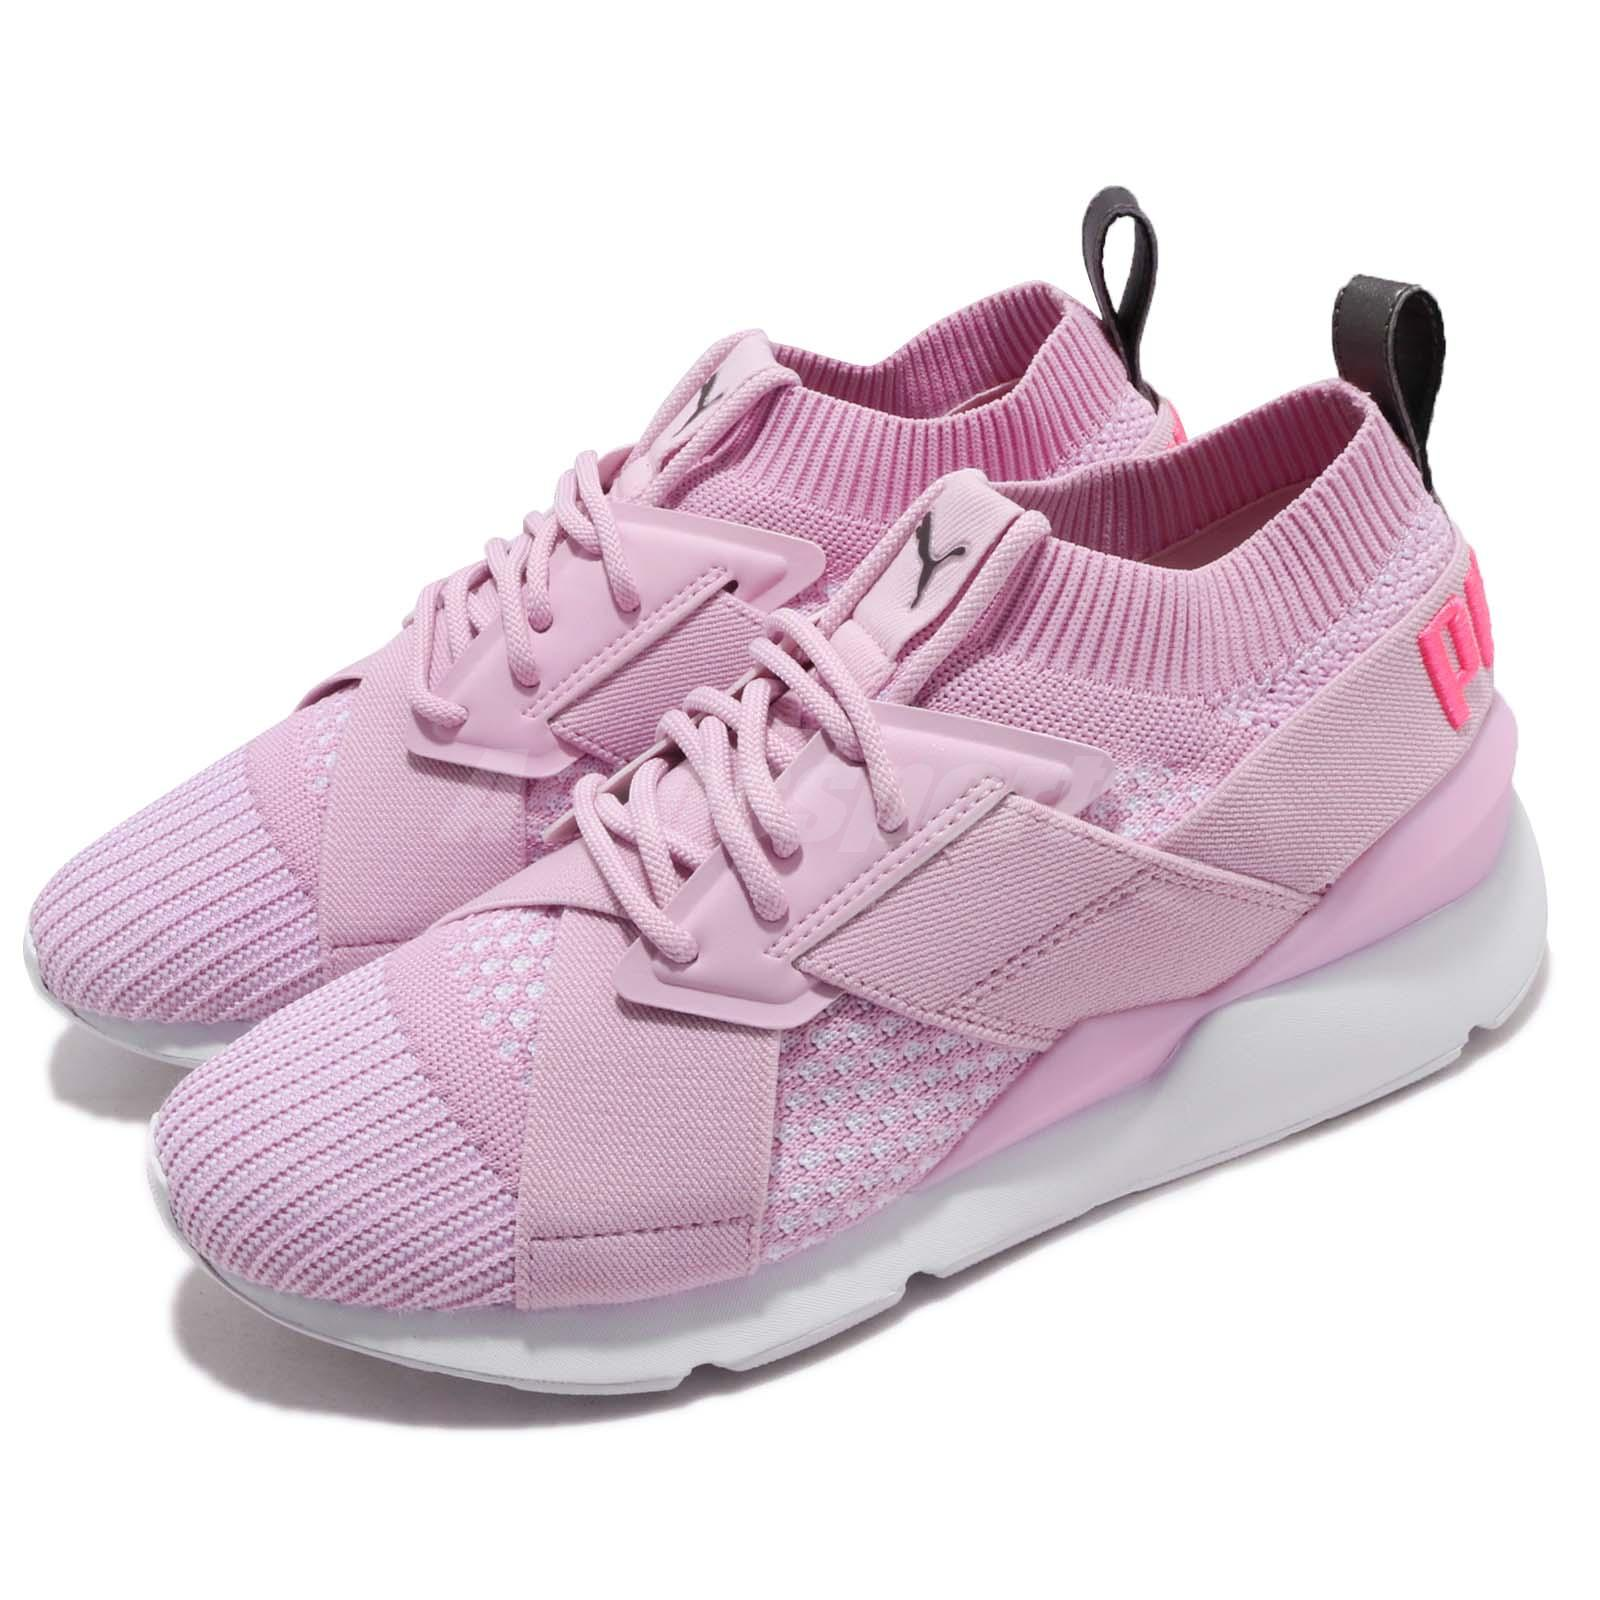 Orchid Women Shoes Puma Wns Winsome Muse Evoknit Sneakers Running EWDIHY29